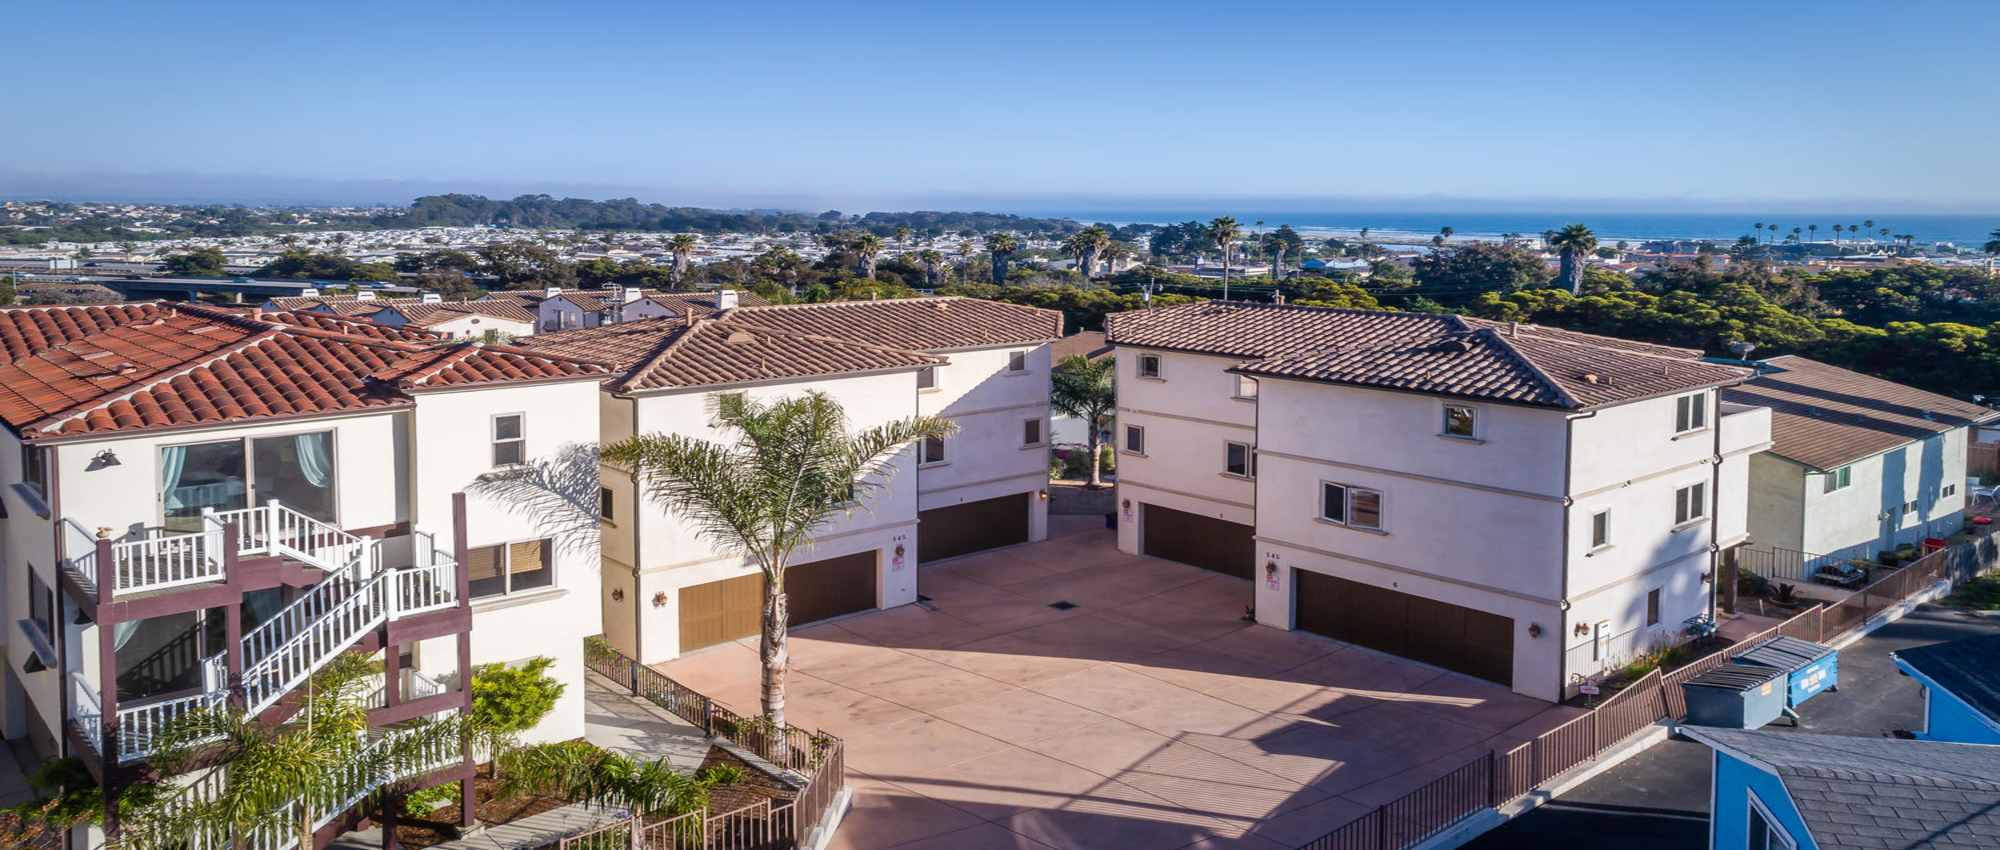 545 Bello St. #4, Pismo Beach, CA